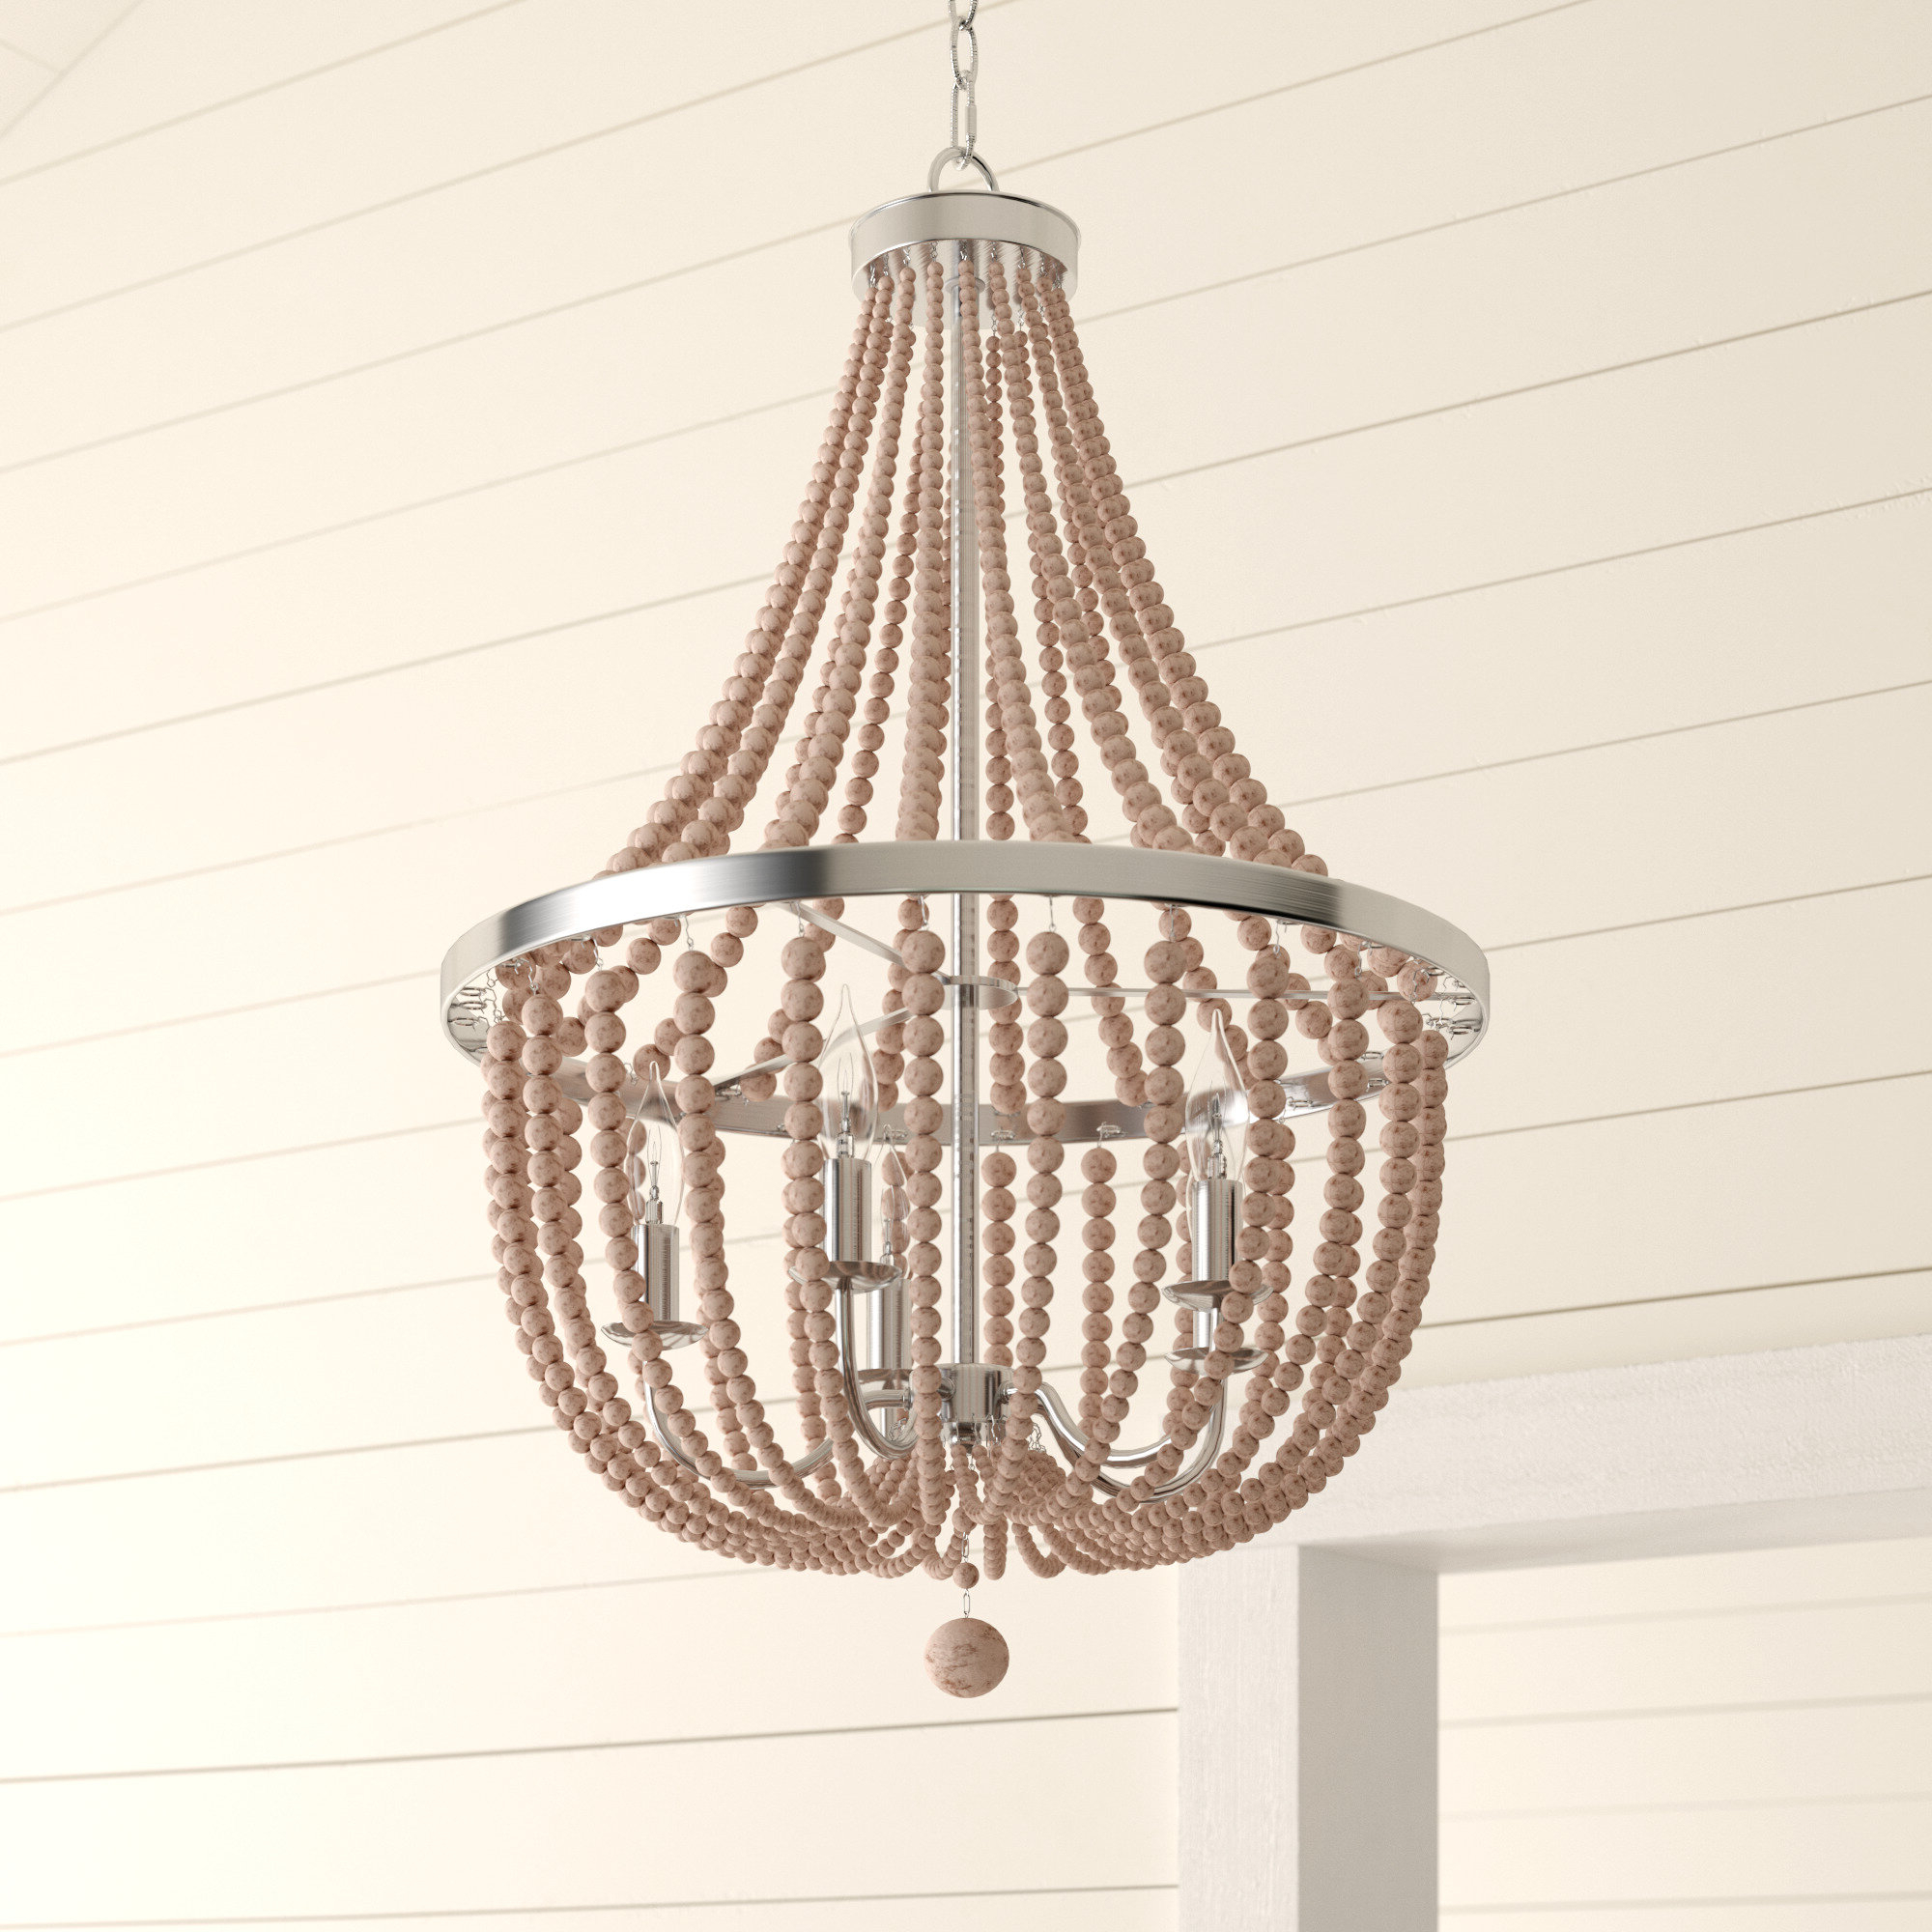 Nehemiah 3 Light Empire Chandeliers Pertaining To Best And Newest Bay Isle Home Tilden Wood Bead 5 Light Empire Chandelier (View 11 of 25)